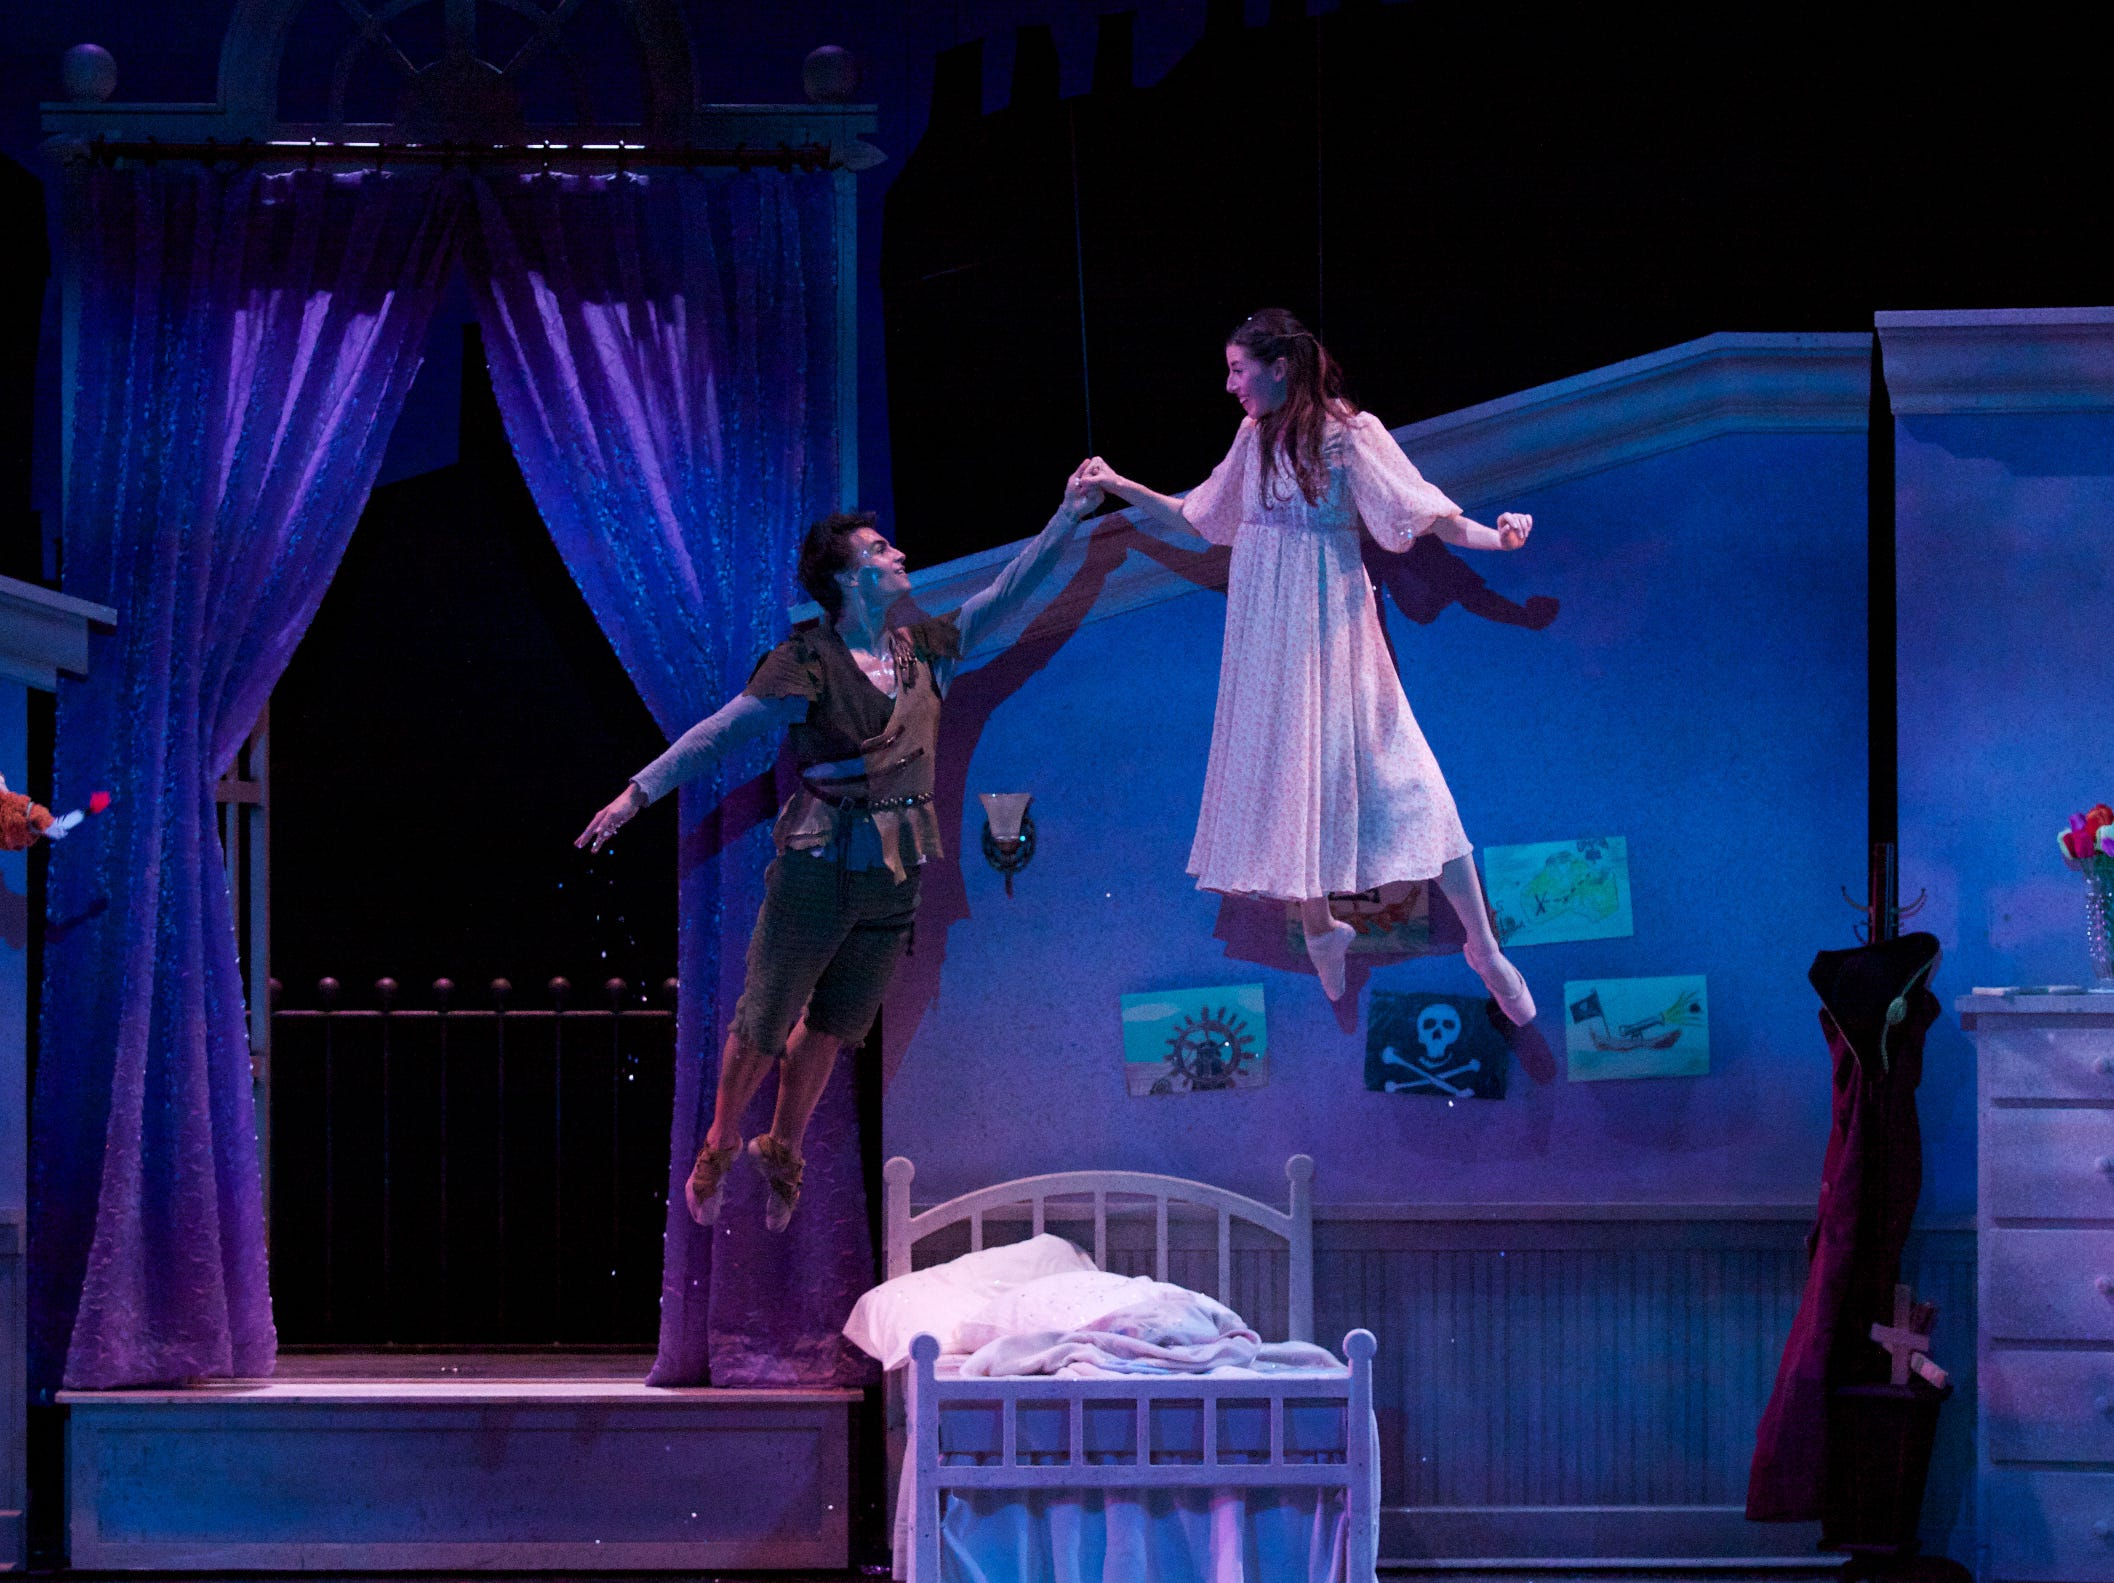 """Milwaukee Ballet's """"Peter Pan"""" at the Marcus Center for the Performing Arts 2012 Marc Petrocci and Valerie Harmon Photo Michael S. Levine"""